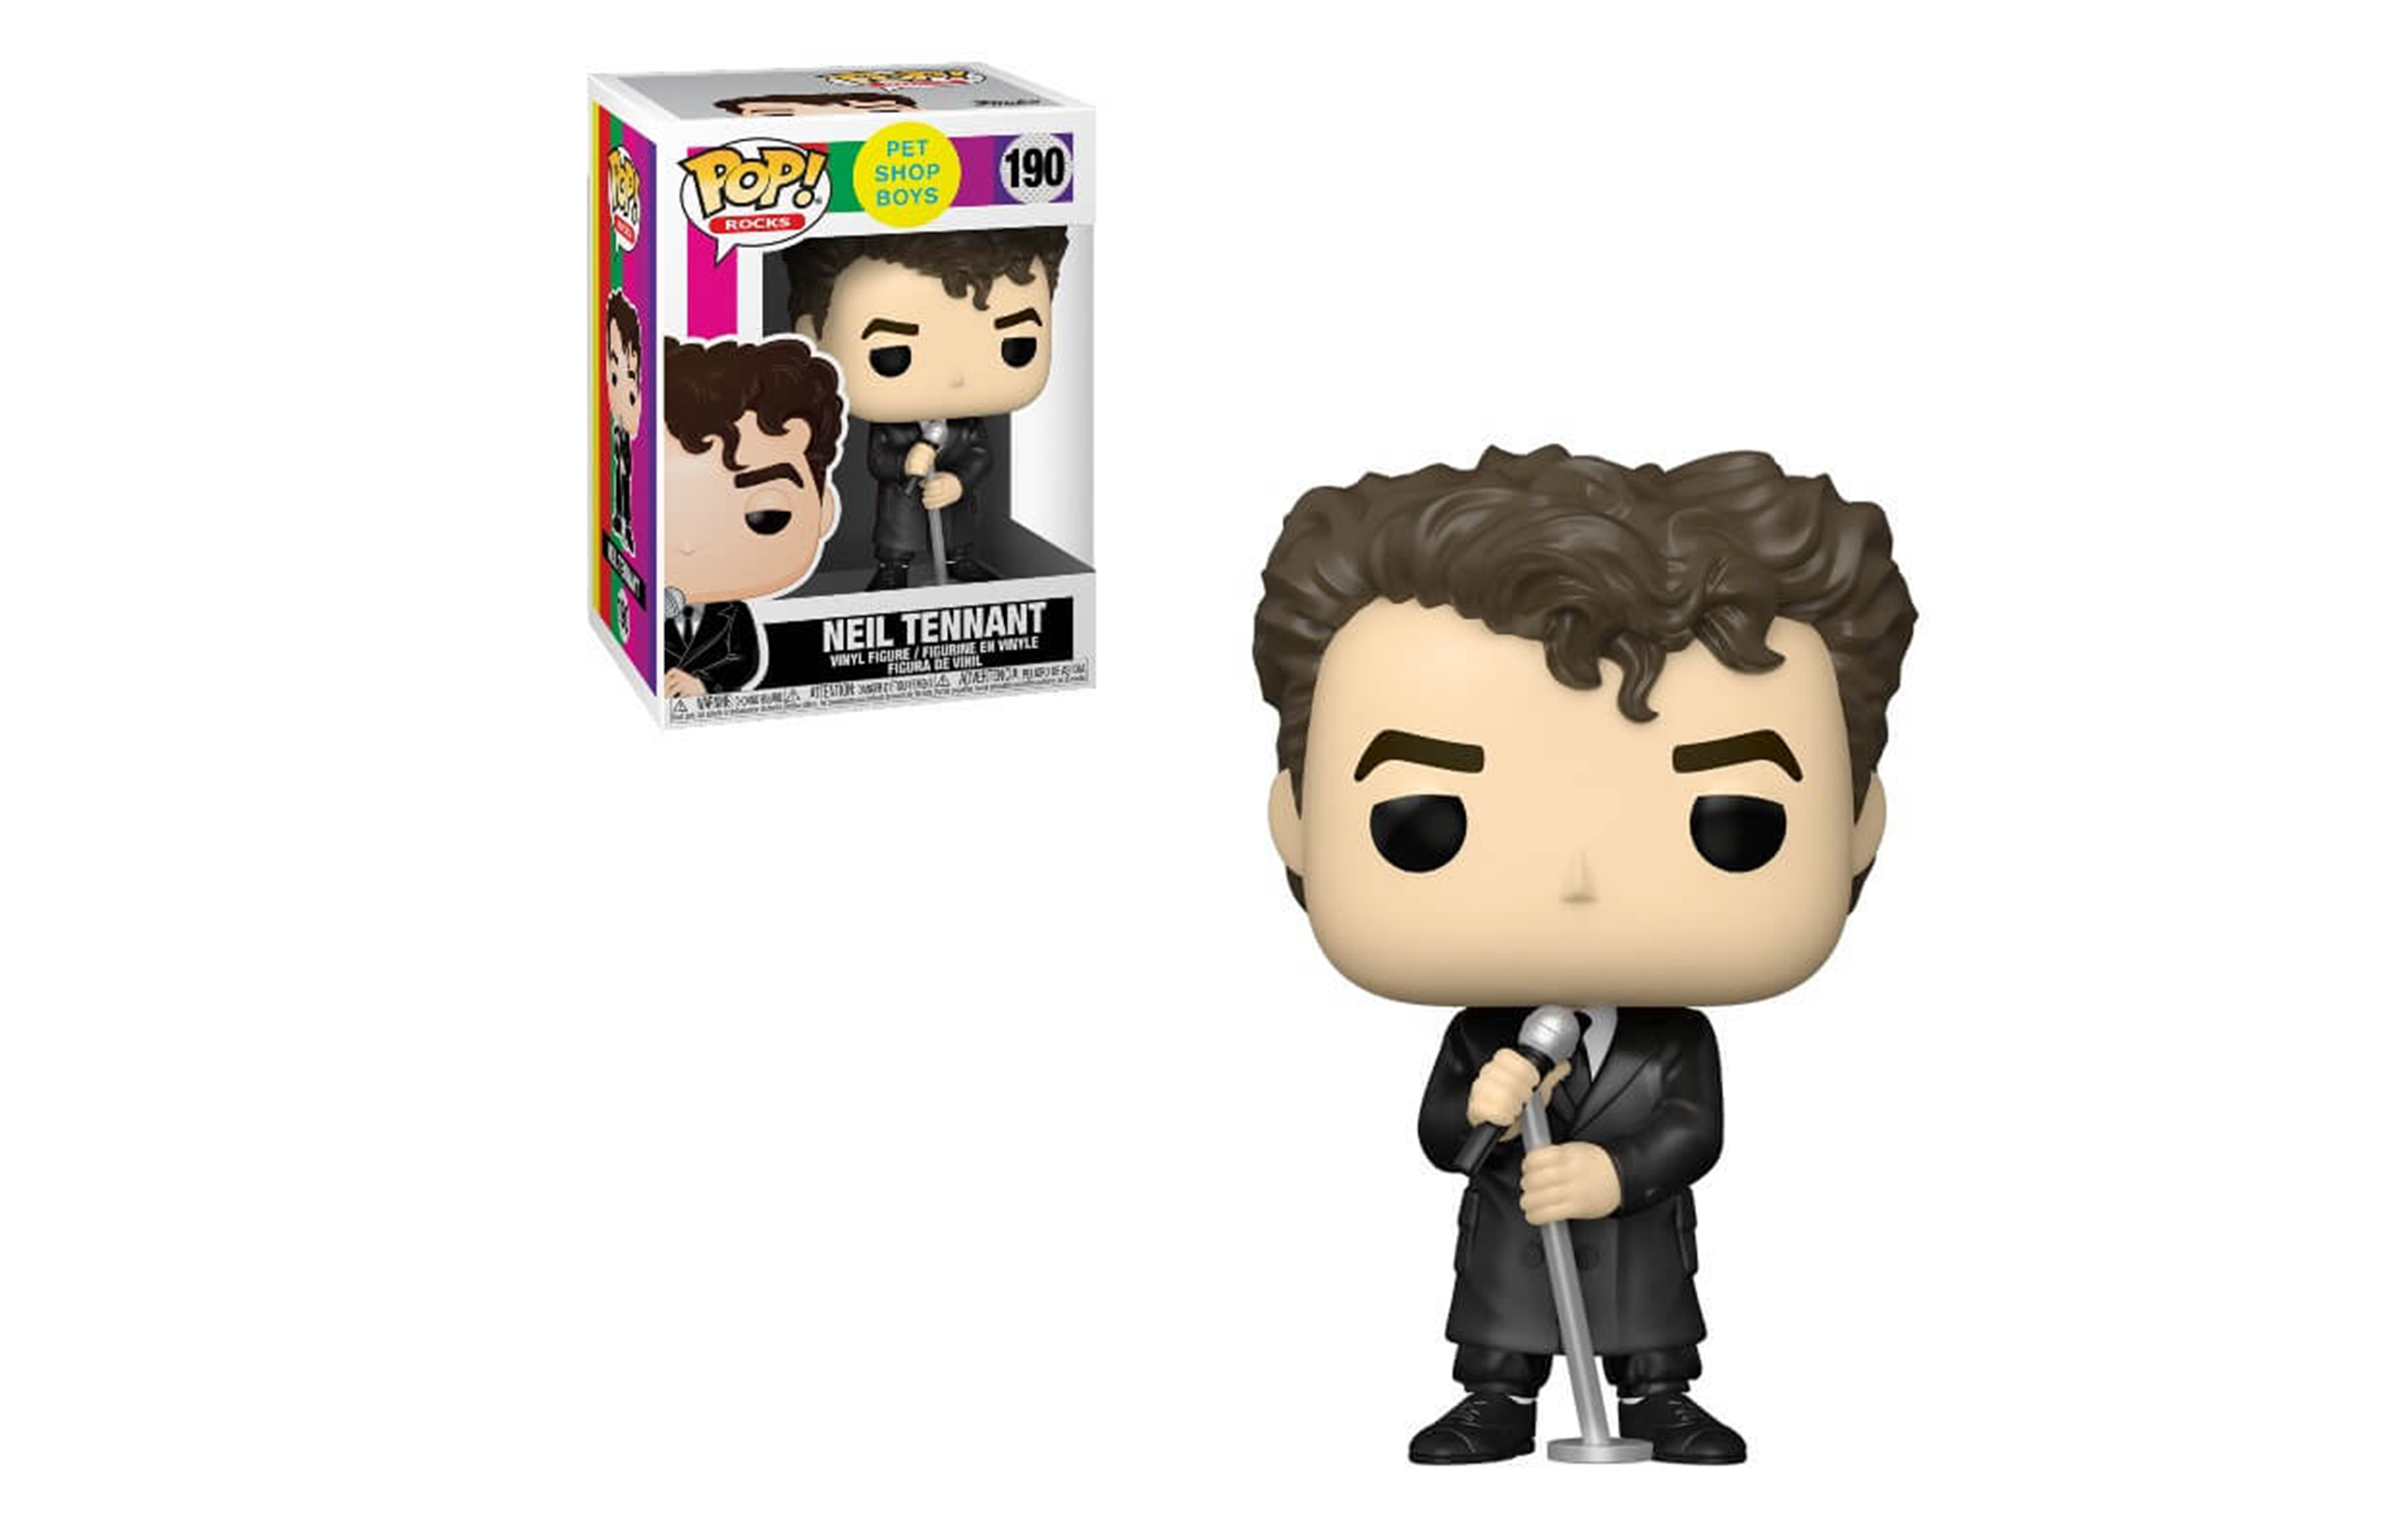 Pet Shop Boys Neil Tennant 190 Funko POP Vinyl Figure